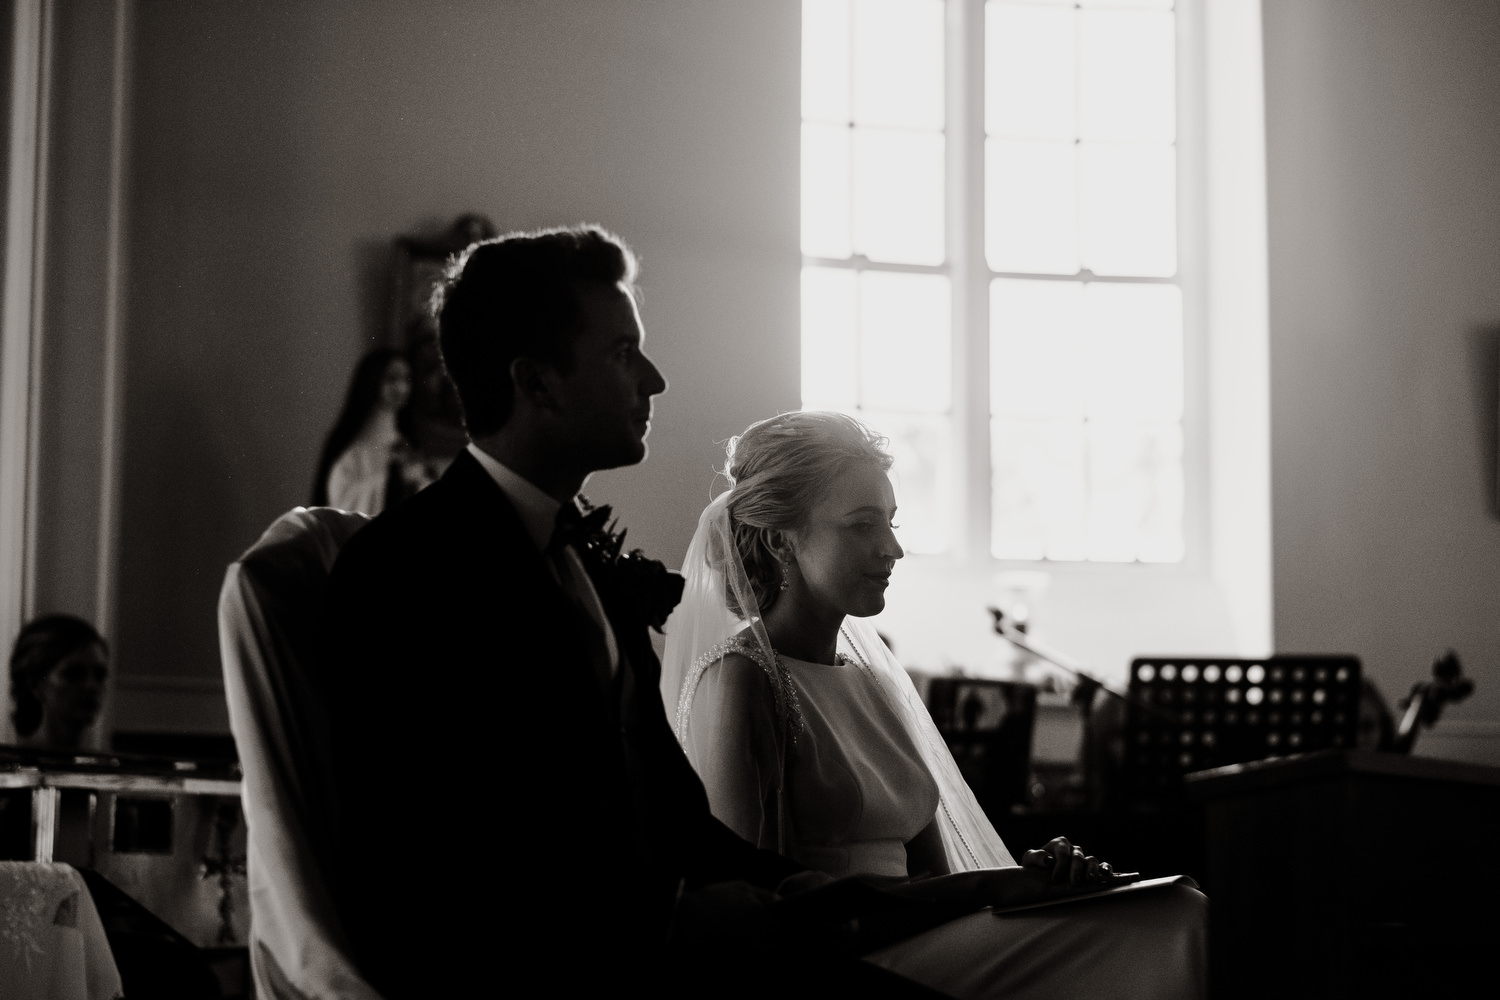 silhouette of groom and bride during wedding ceremony